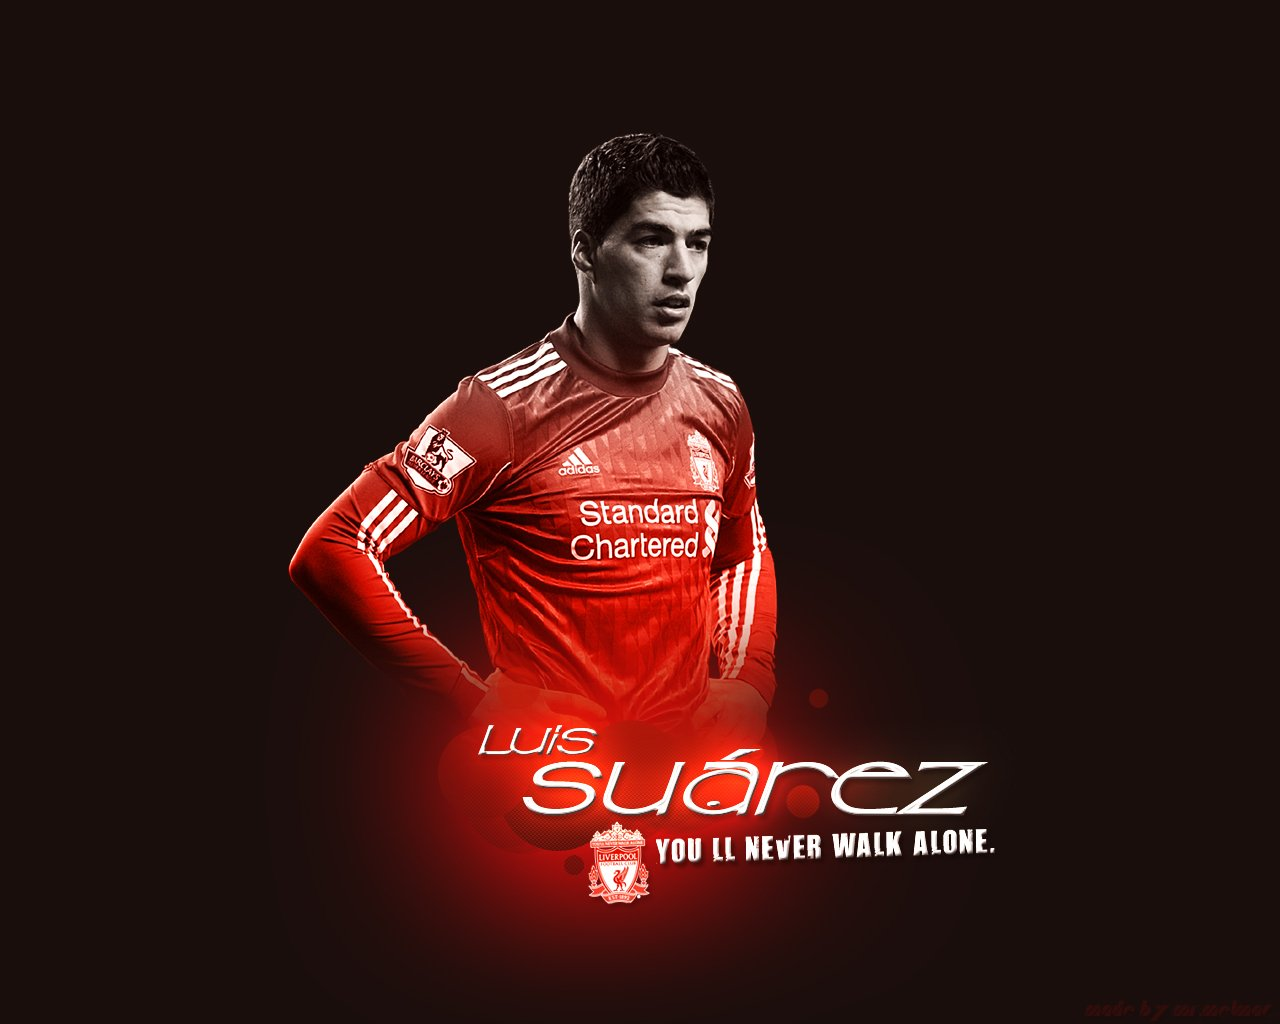 Luis Surez desktop image Liverpool wallpapers 1280x1024